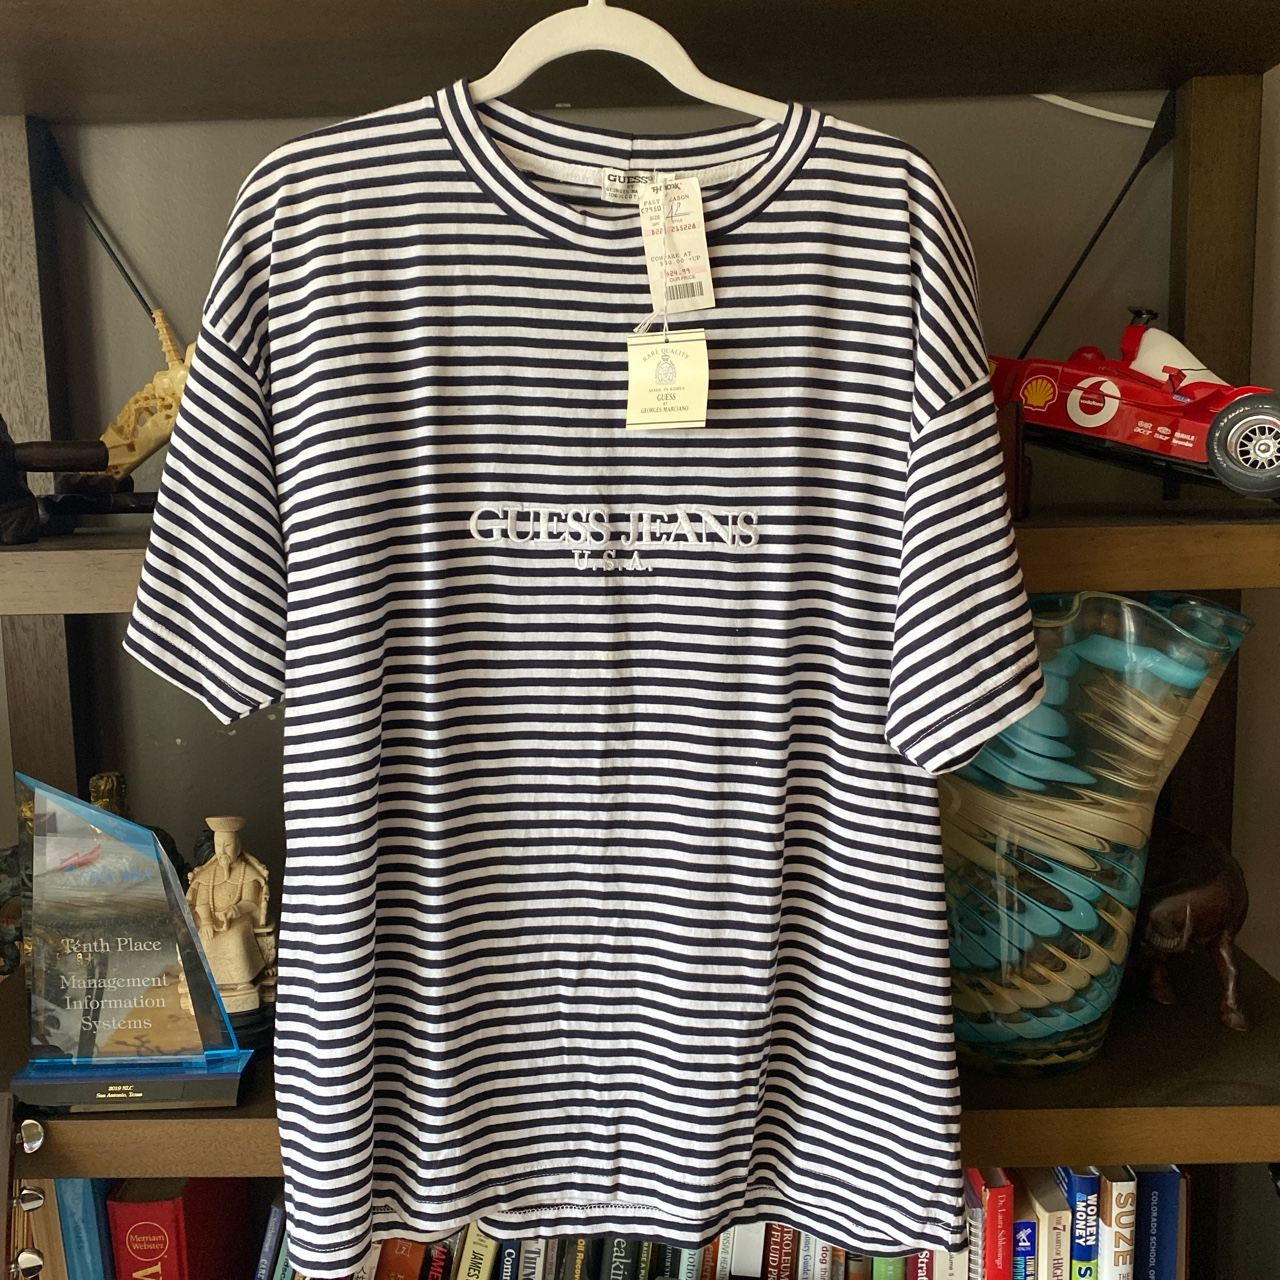 Product Image 2 - Vintage guess striped tee Trust me